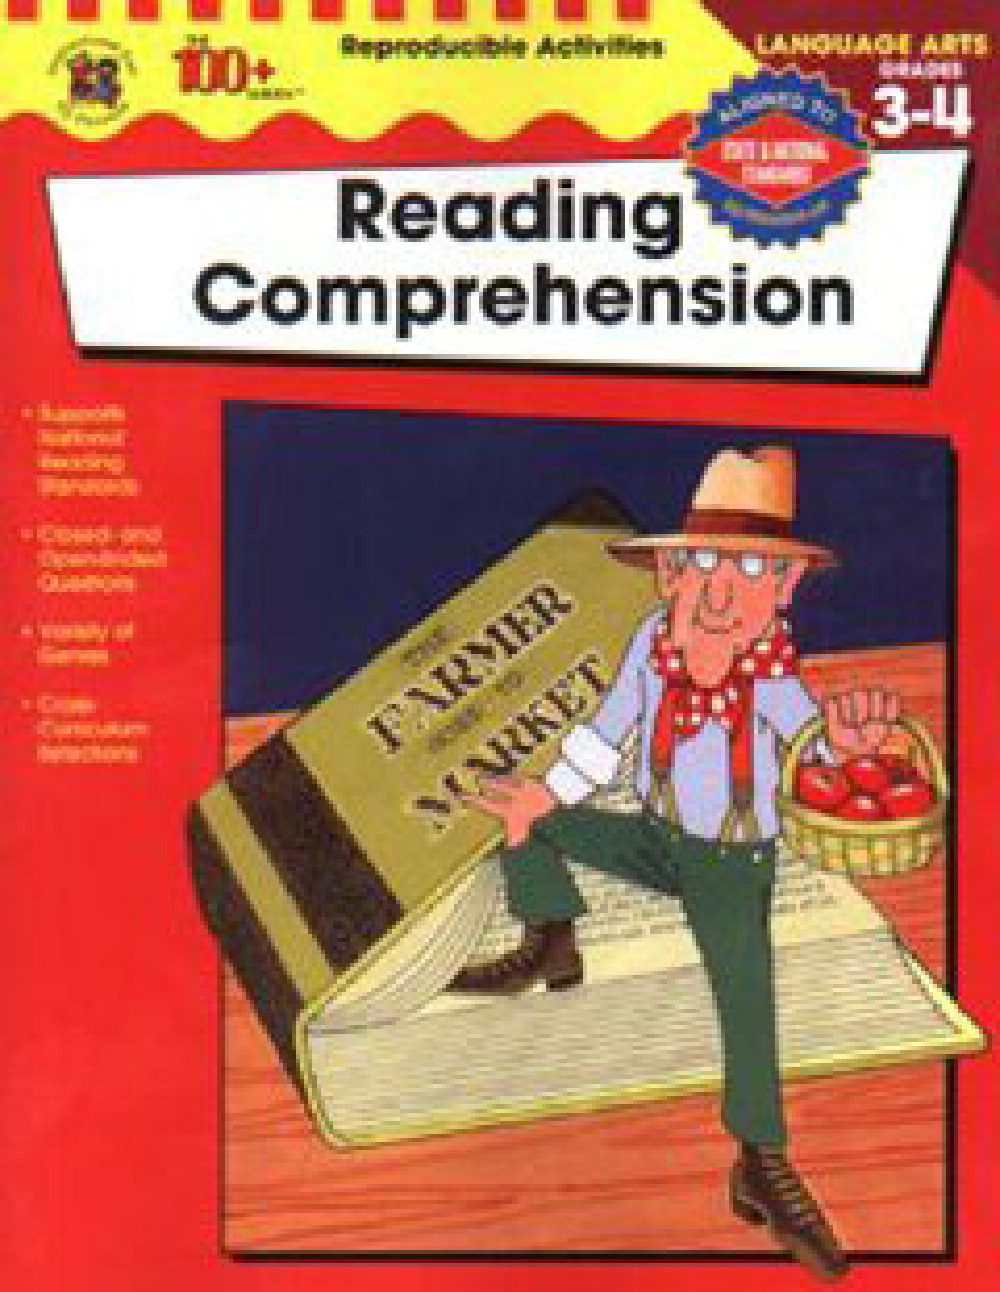 instructional materials for reading comprehension